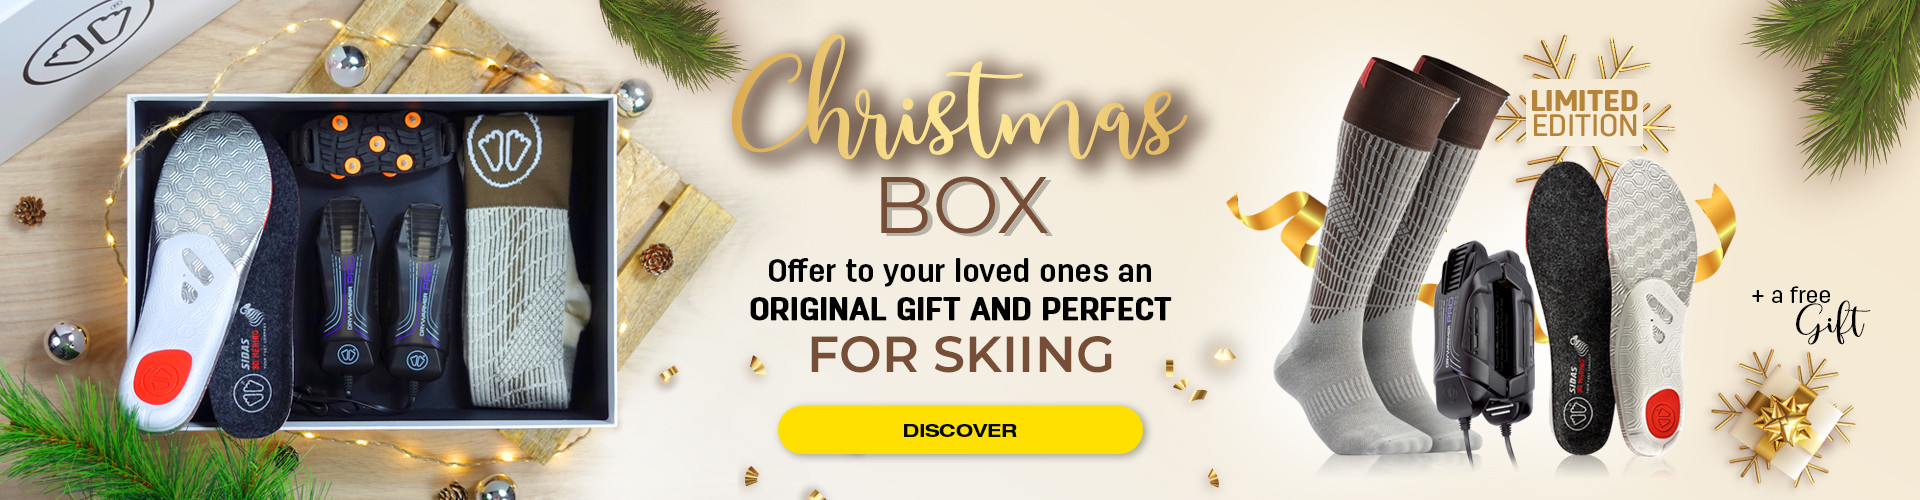 Offer an original gift to your friends and family! Discover our ski Christmas box